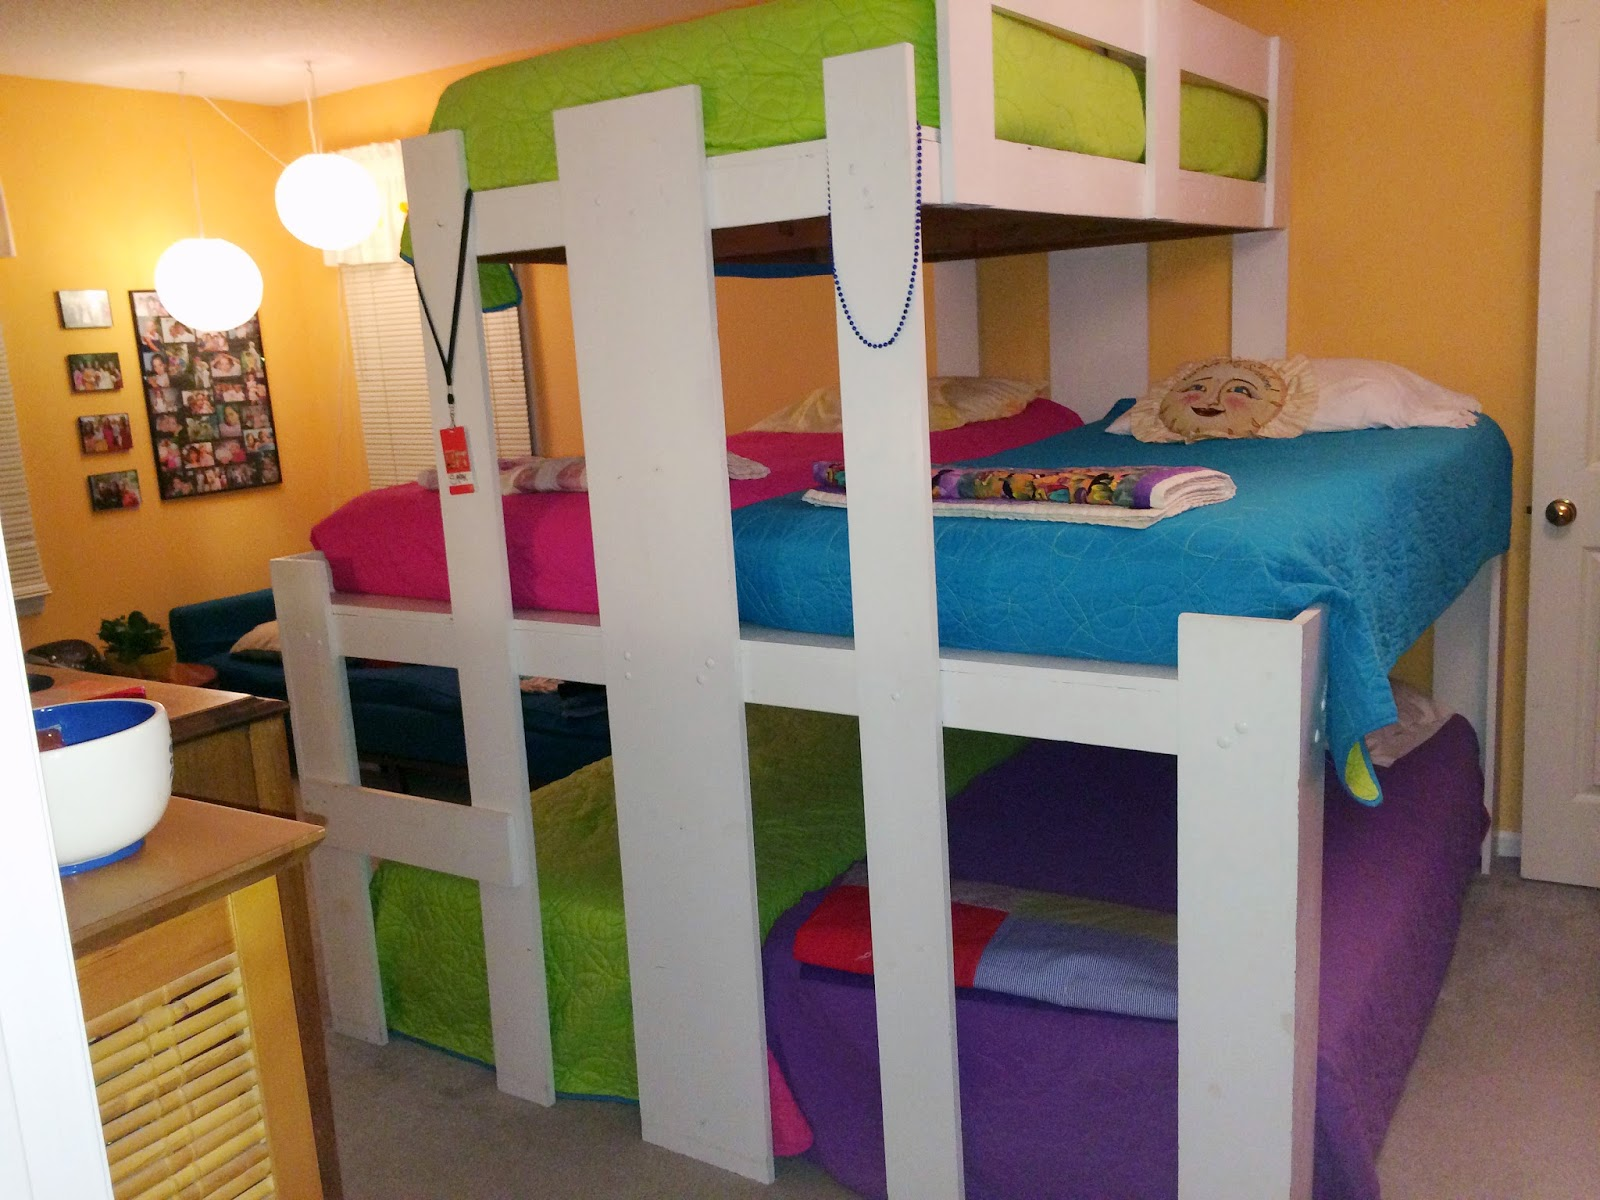 Ideas For Bunk Beds The Benefits Of Room Sharing Messymom